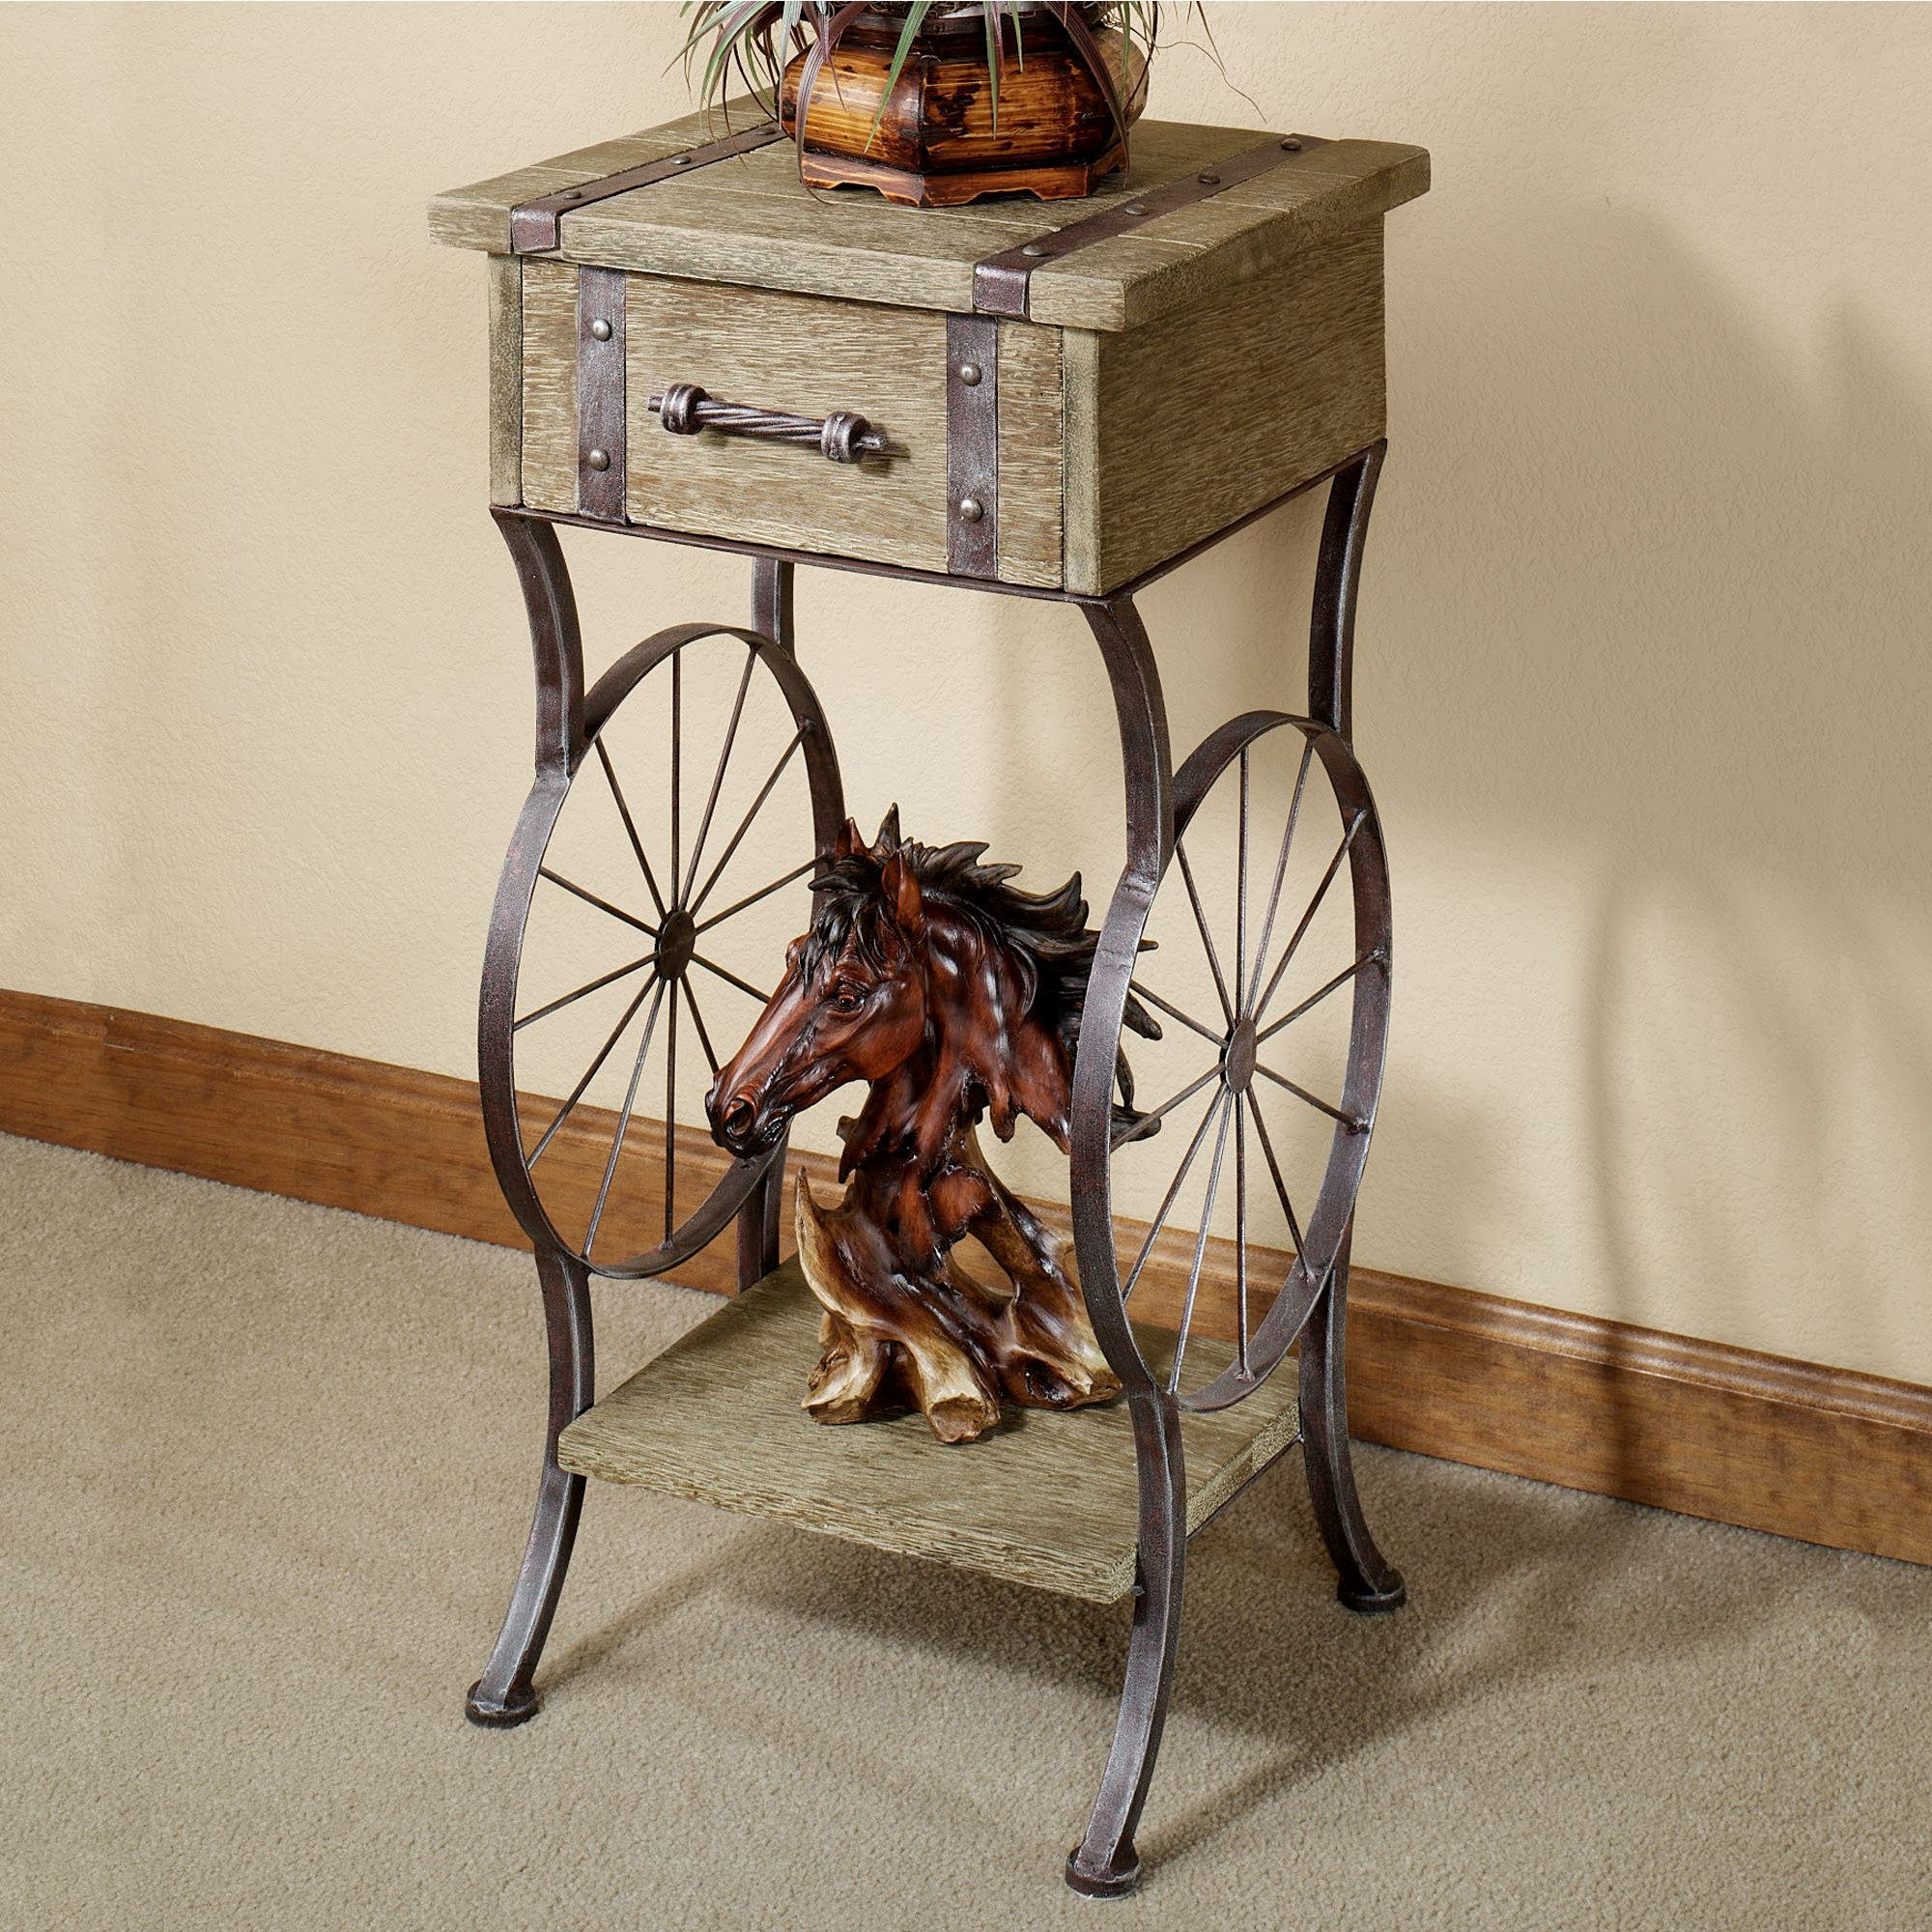 waterbury silver accent table tables colors aharney open range western knurl nesting black and cherry coffee narrow glass elm side door designs for rooms tall mirrored chest